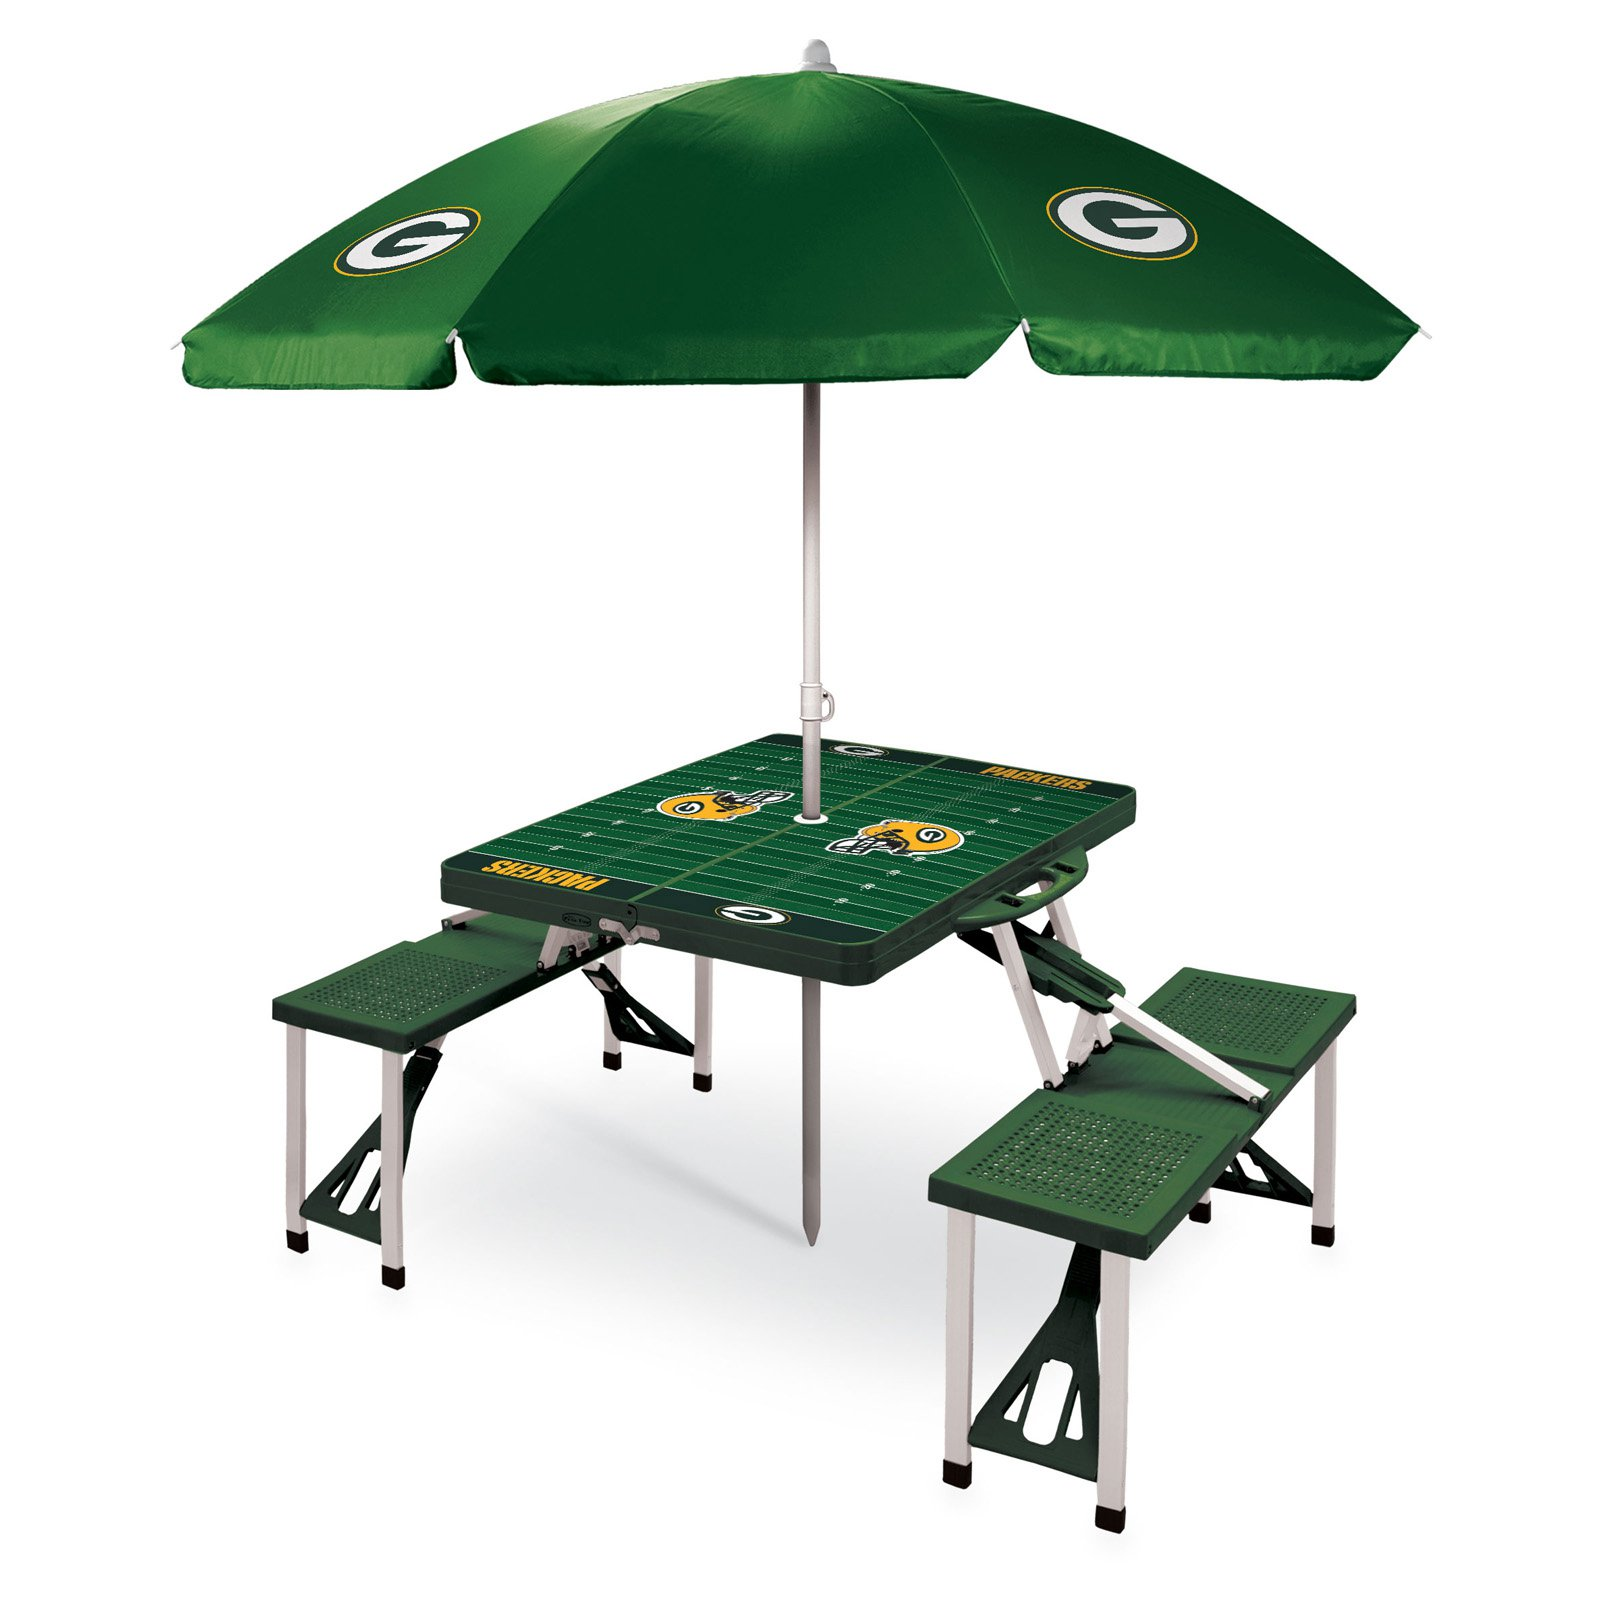 Picnic Time NFL Folding Picnic Table with Umbrella